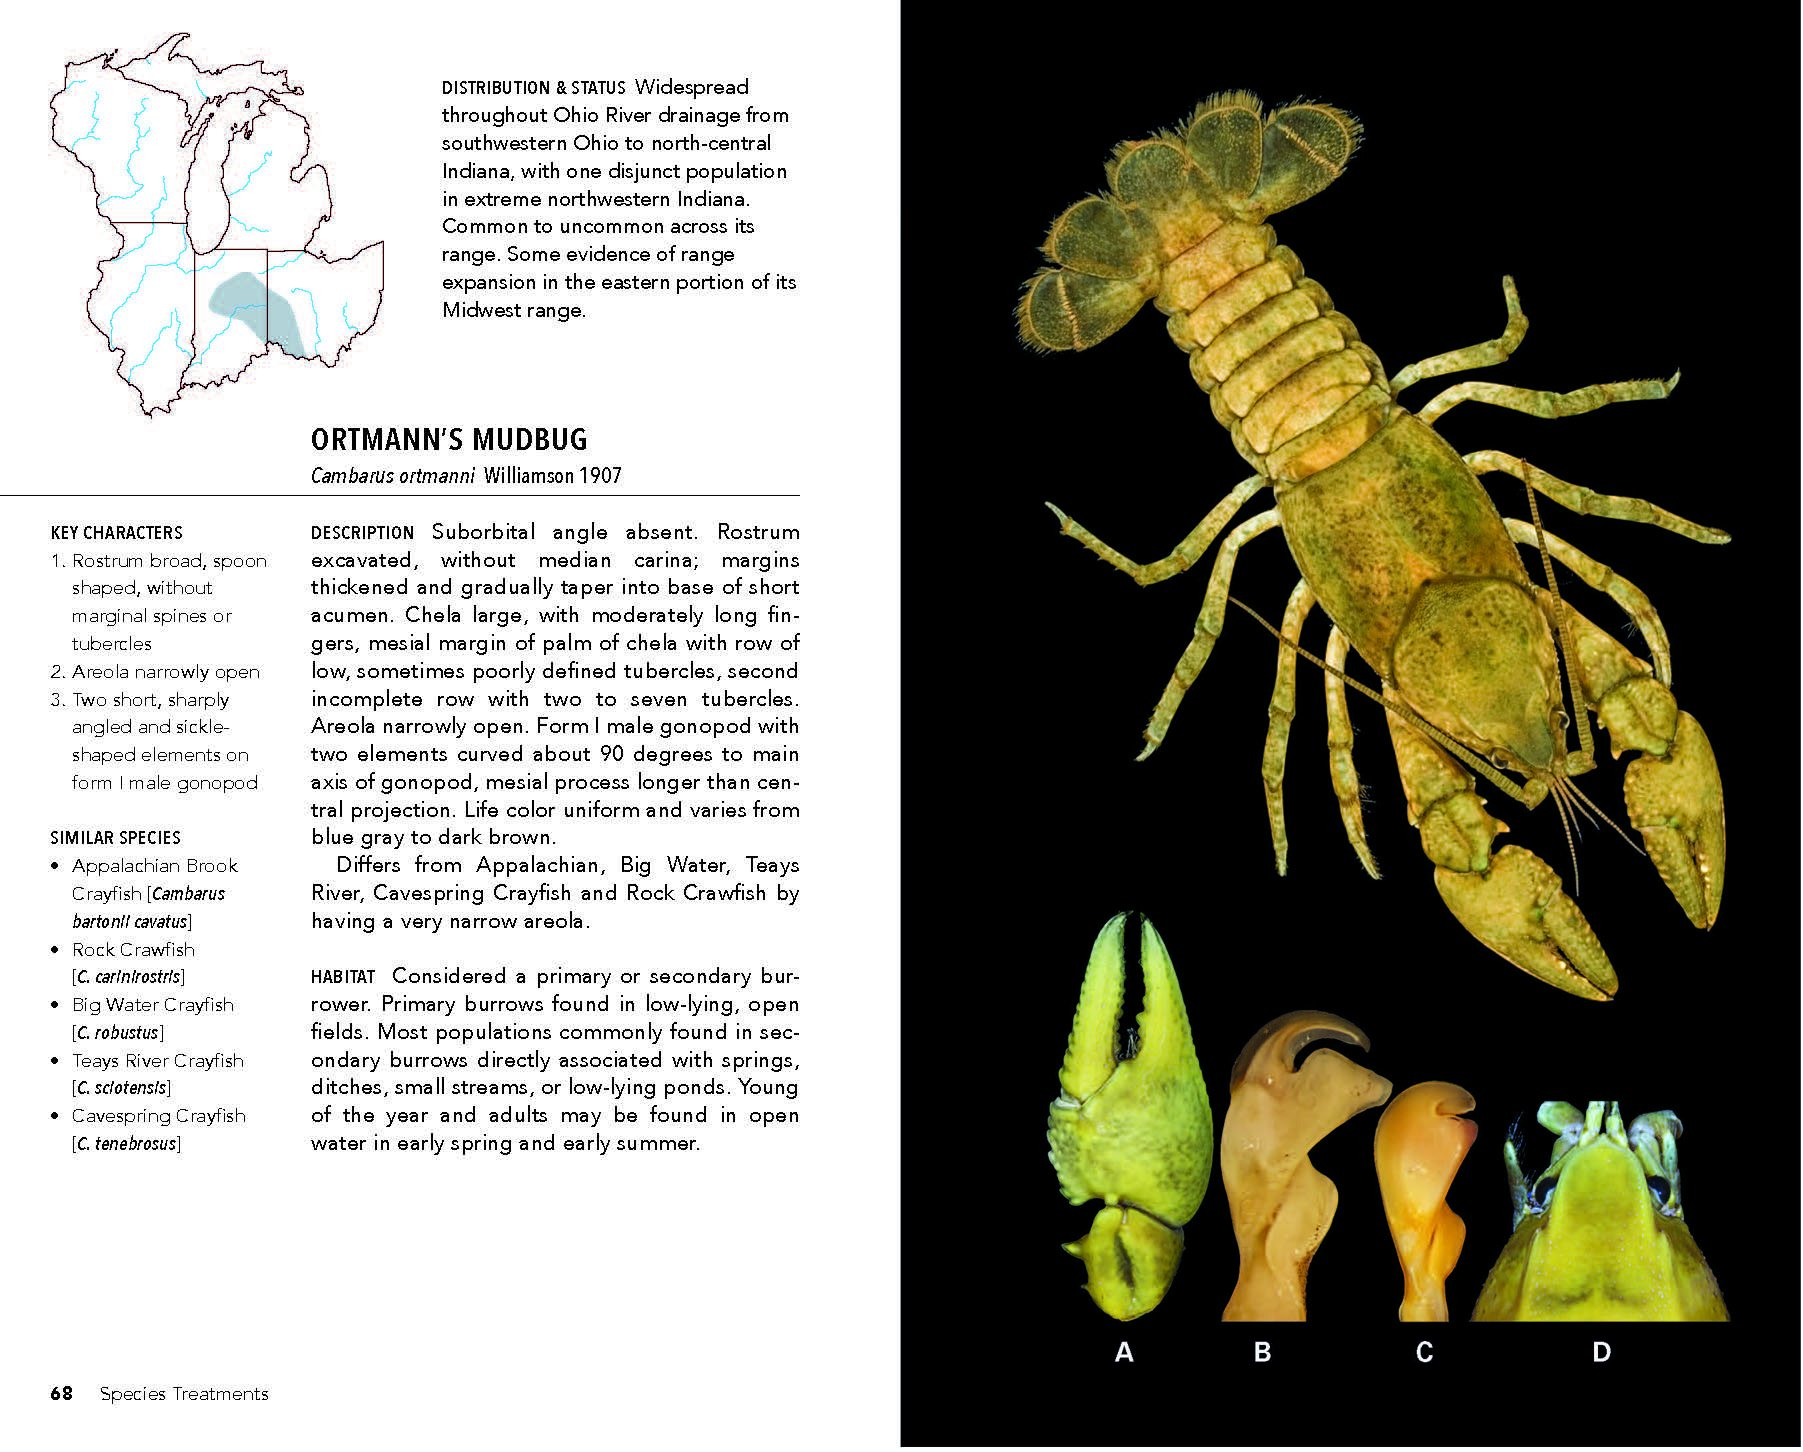 Field Guide To Crayfishes Of The Midwest Christopher A Taylor